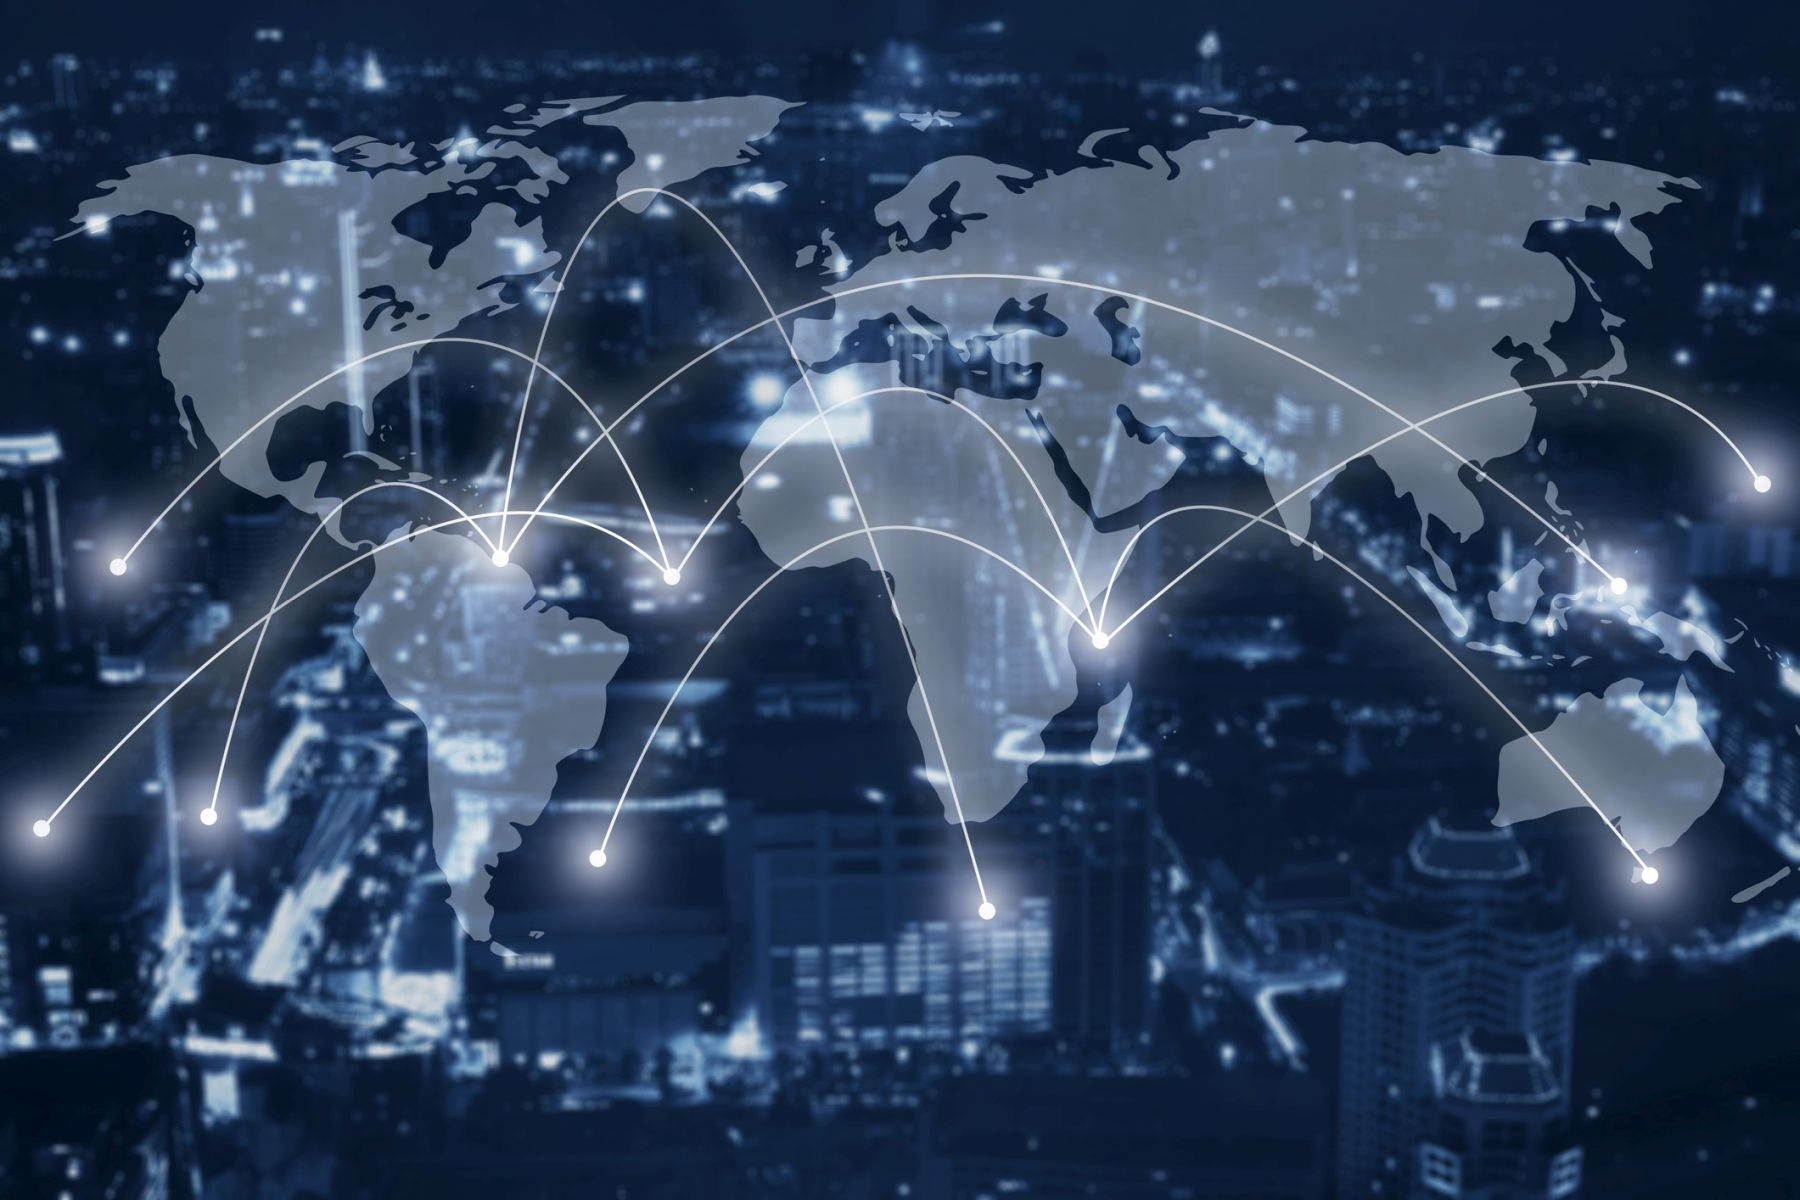 Worldwide network for shipment and logistics